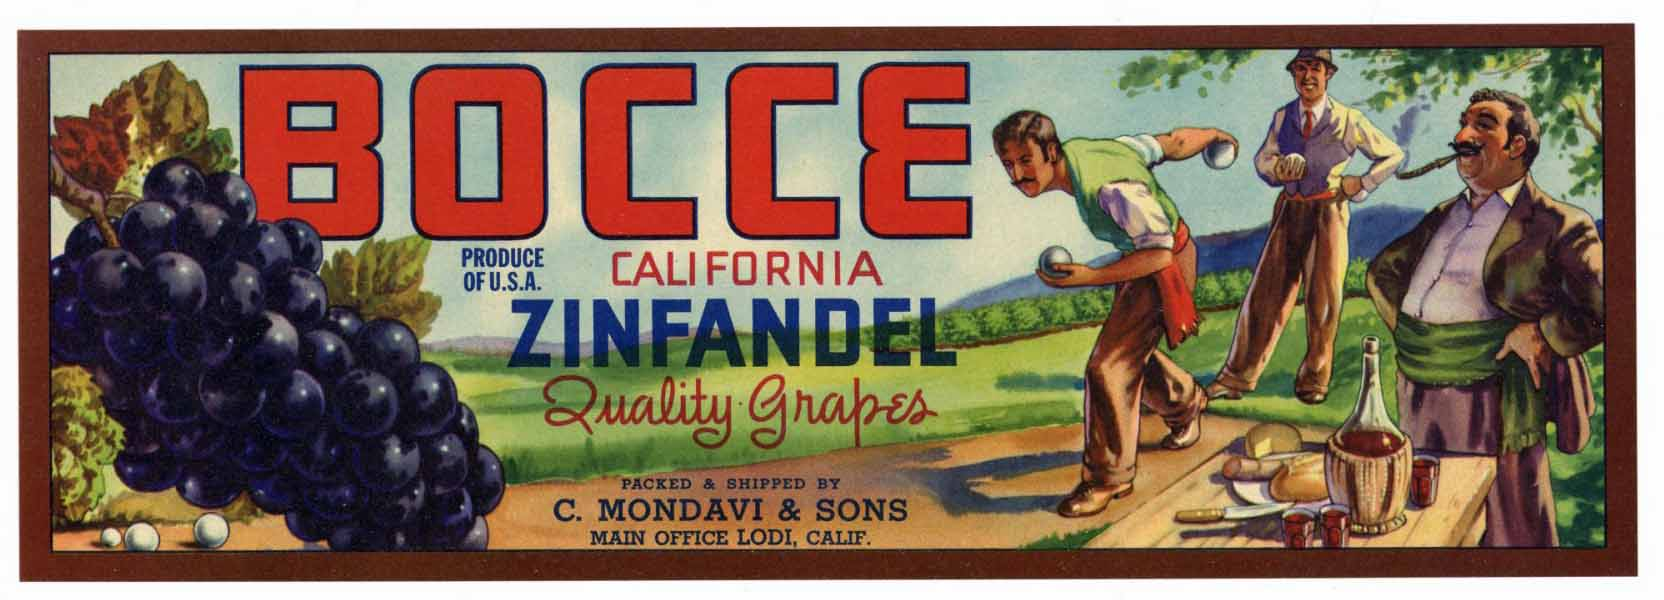 Bocce Brand Vintage Lodi Grape Crate Label